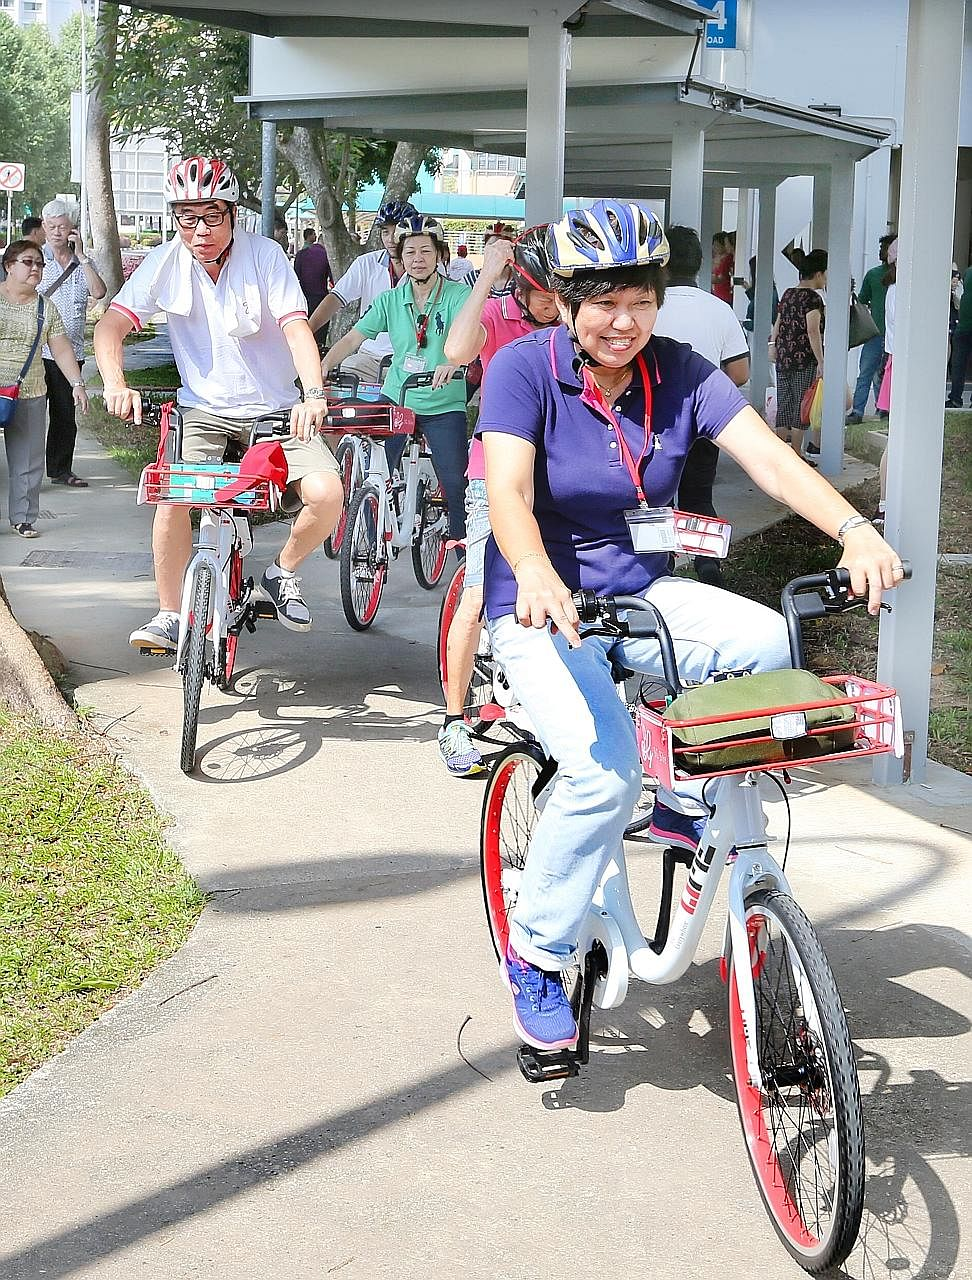 The lock of the SG Bike bicycles can be unlocked with the phones of registered users, a special card mailed to them, or even their ez-link card.